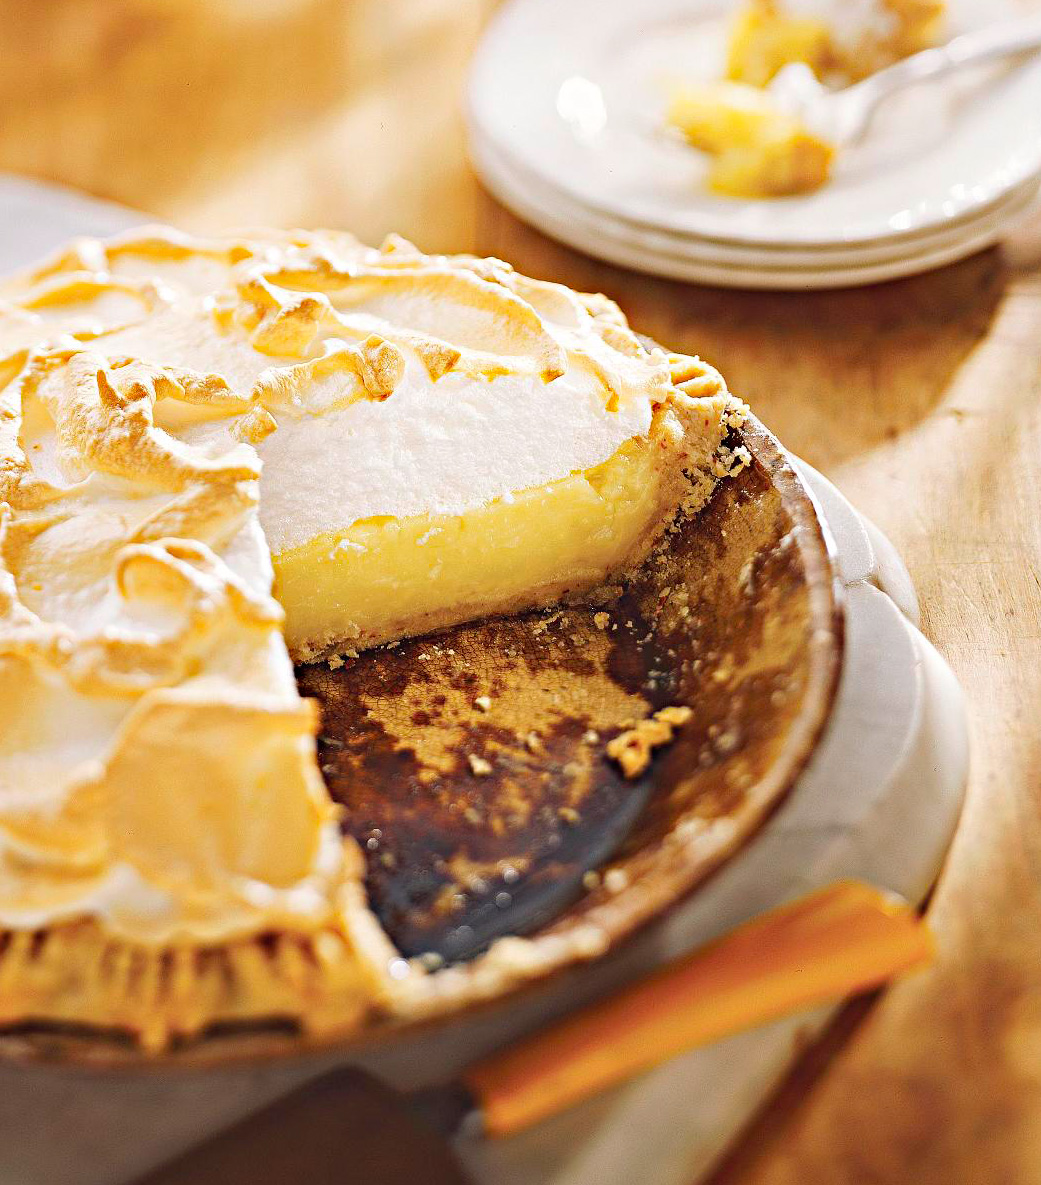 Luke's Lemon Meringue Pie